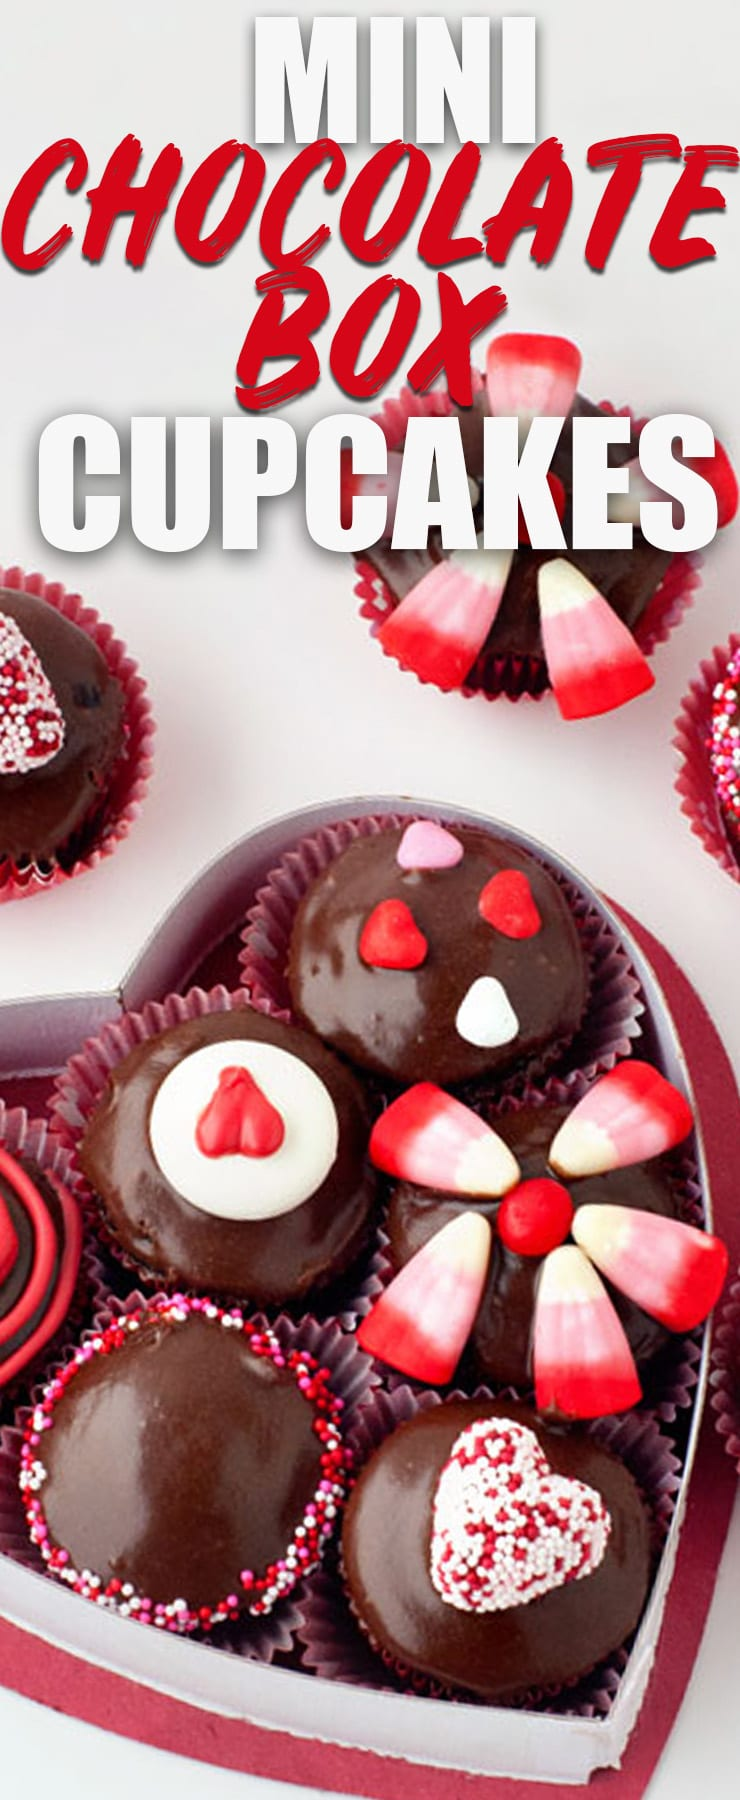 These Mini Chocolate Box Cupcakes are the cutest Valentine's Day dessert you can make! Use cake mix and some creative ideas to turn these into a cute heart box that looks like a box of chocolates!